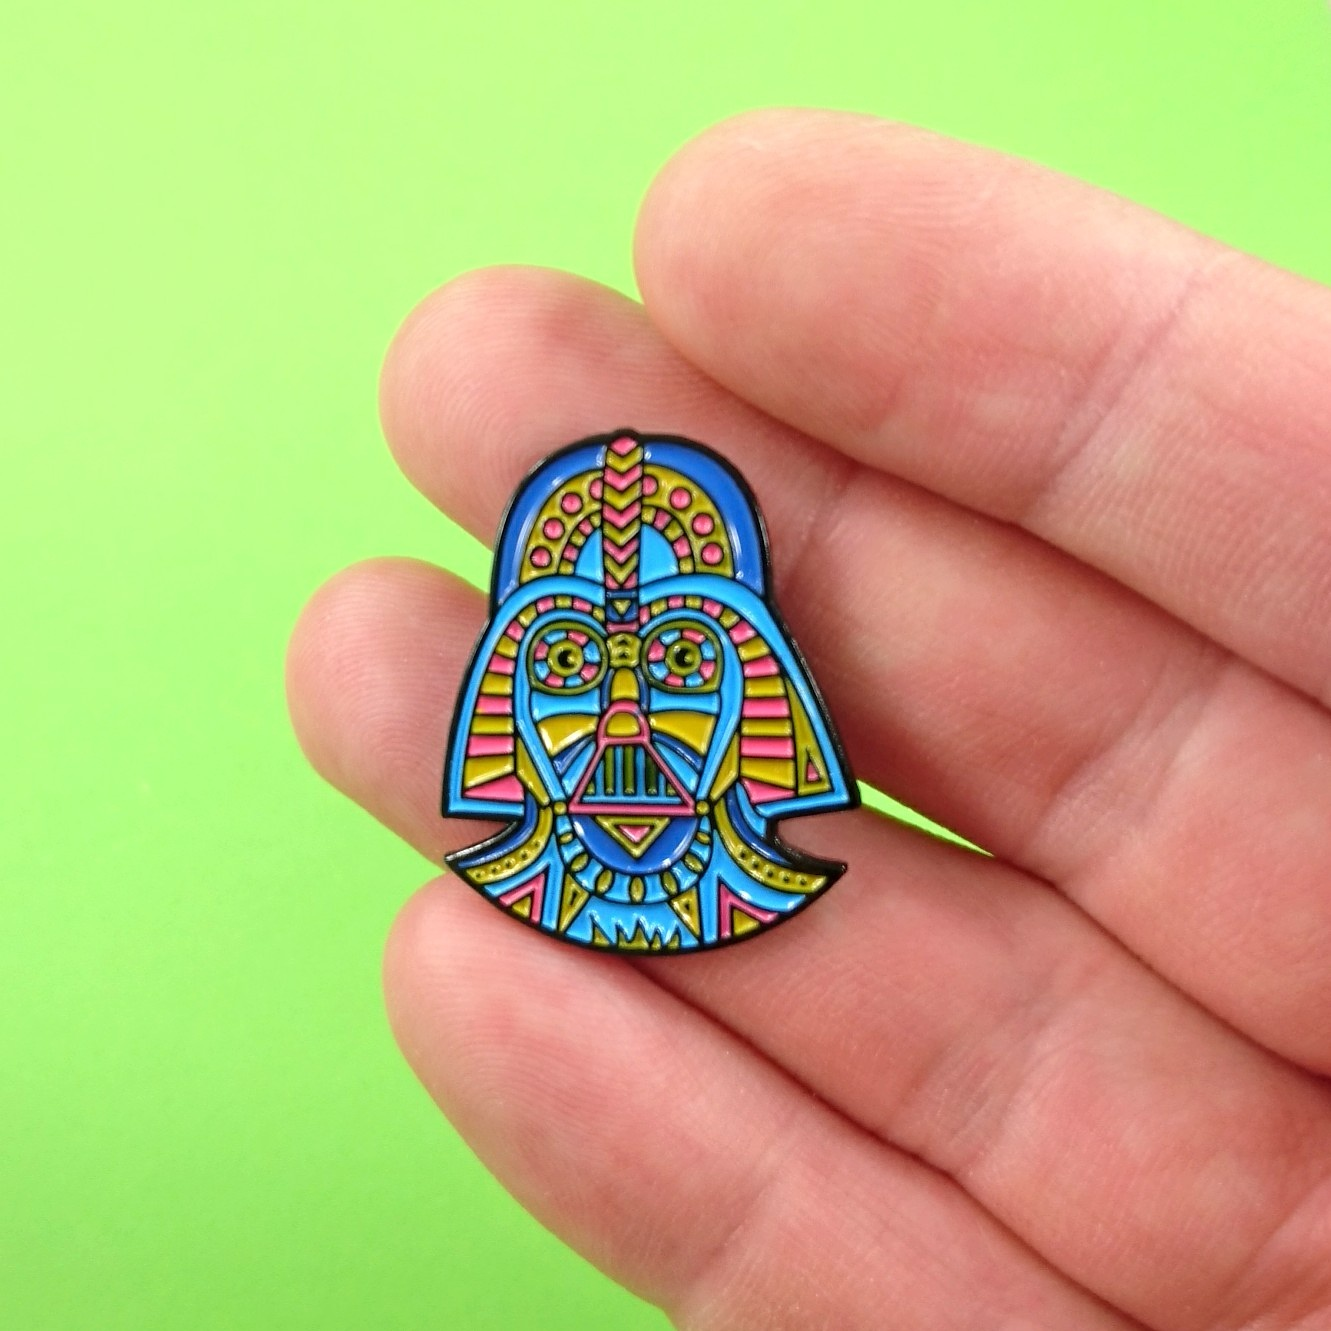 Darth Vader Enamel Pin | Manic Minotaur Shop